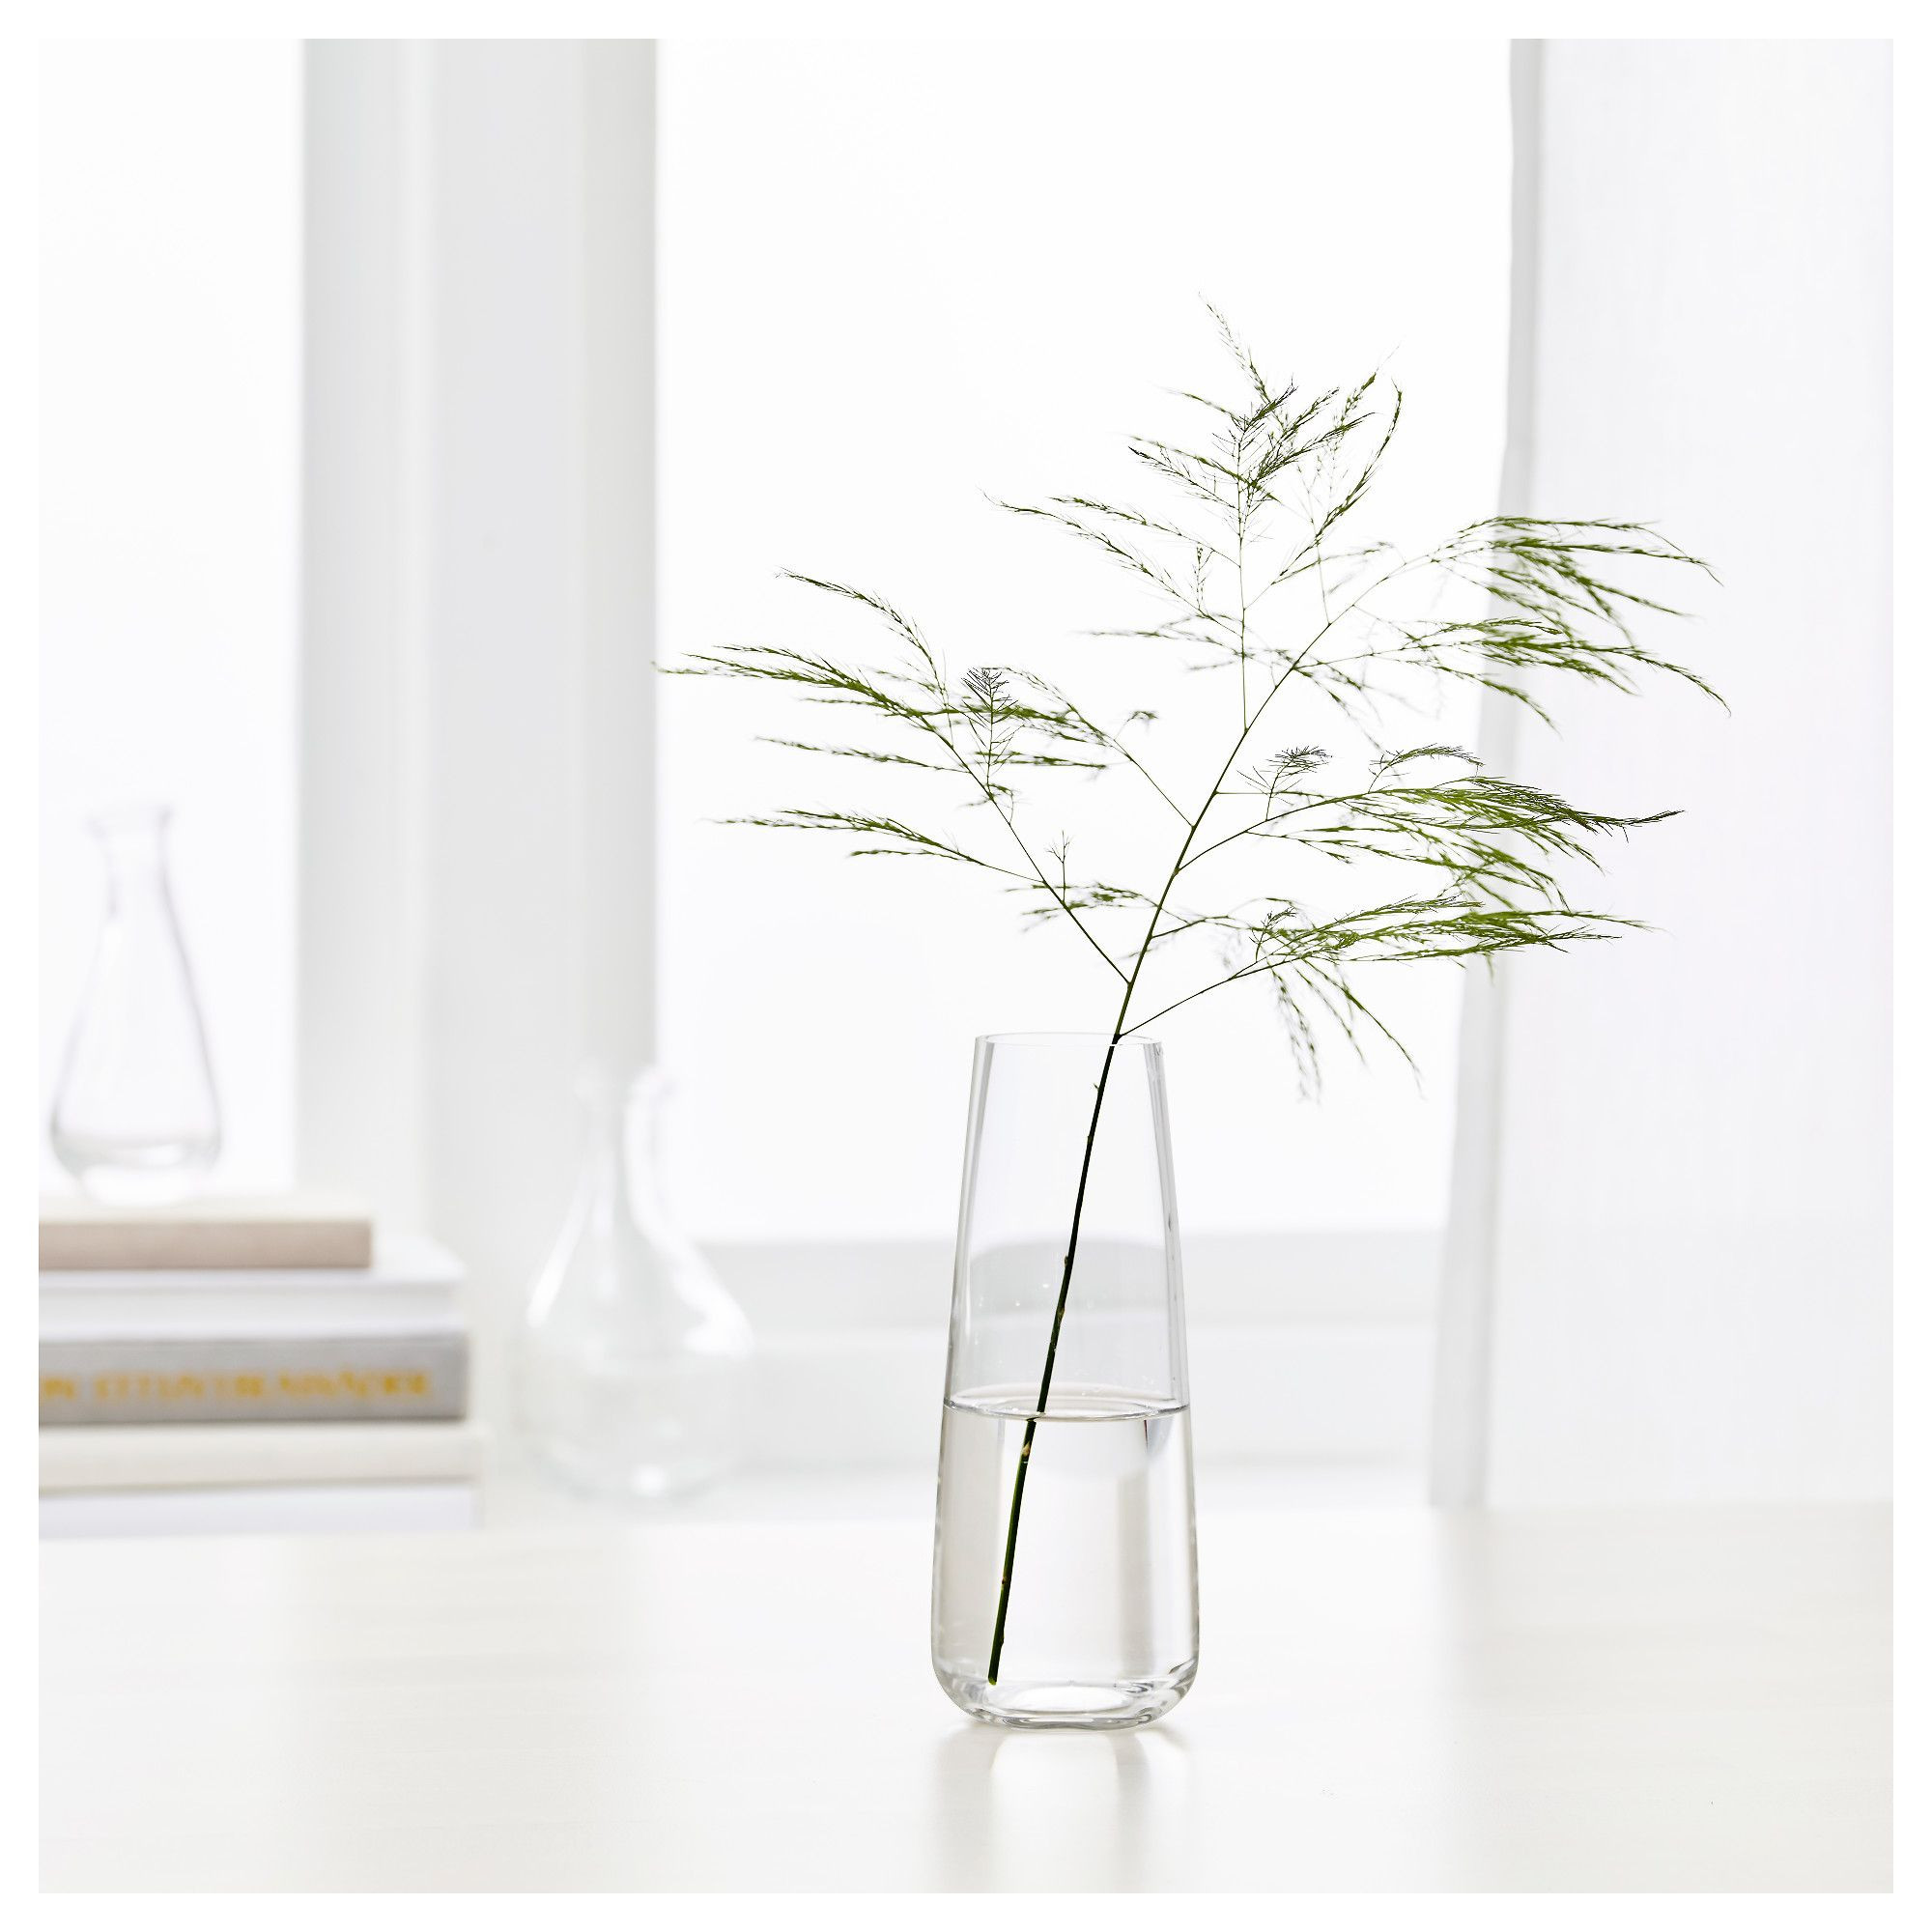 "Small Metal Flower Vases Of Ikea Bera""kna Vase Clear Glass Cag 60 Pinterest Regarding Ikea Bera""kna Vase You Can Easily Make A Beautiful Floral Arrangement with Just A Single Flower or A Twig since the Opening Of the Vase is Small"